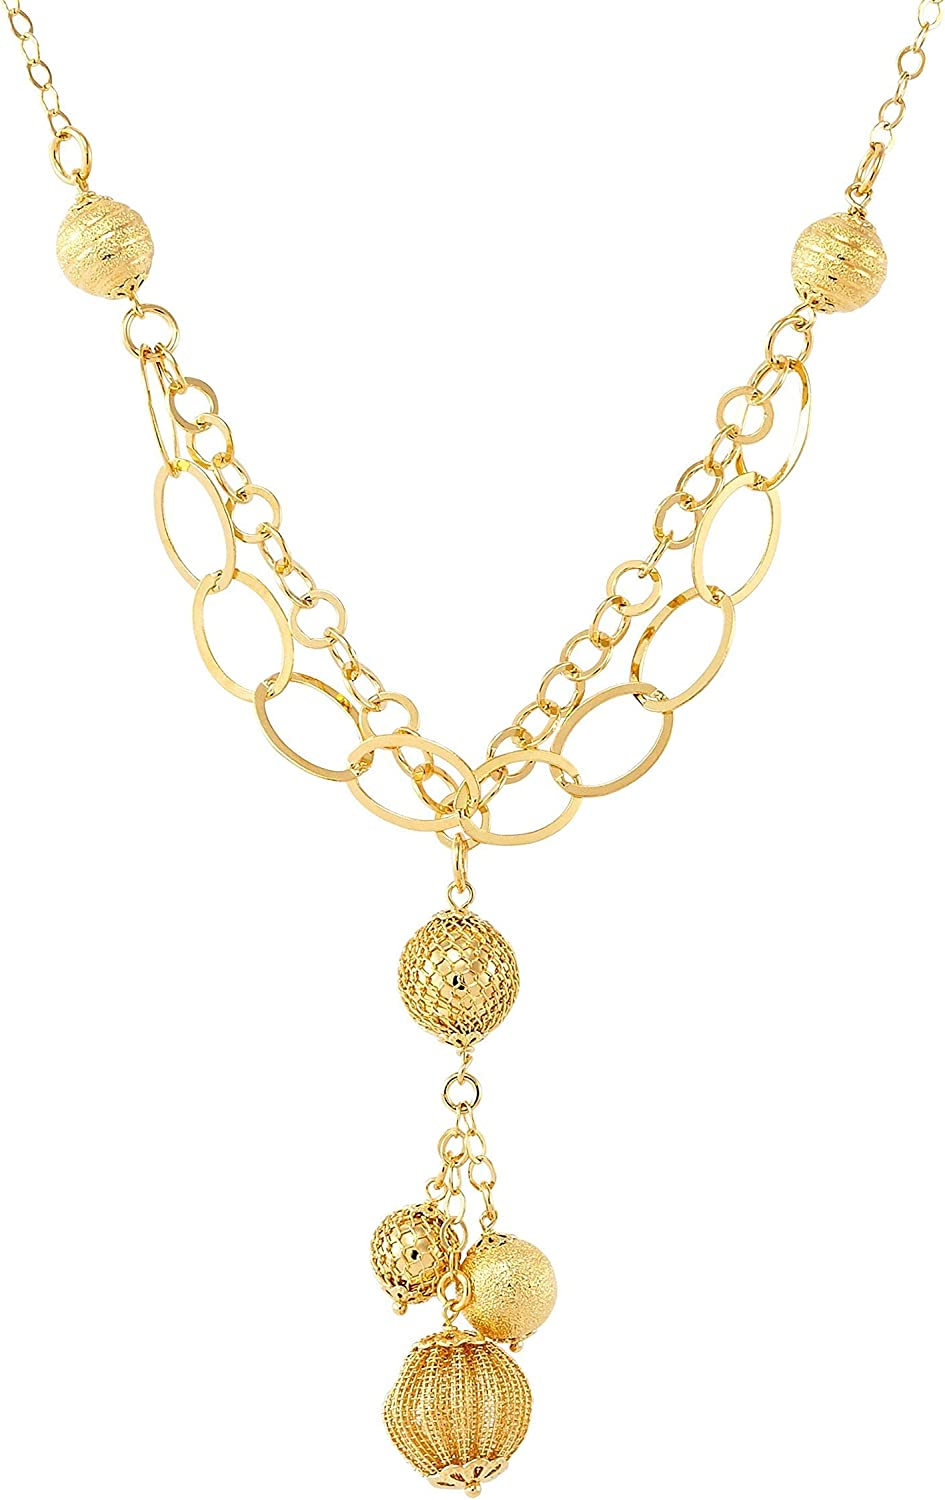 Finecraft 'Ball & Lariat Necklace' in Gold-Plated Bronze, 18